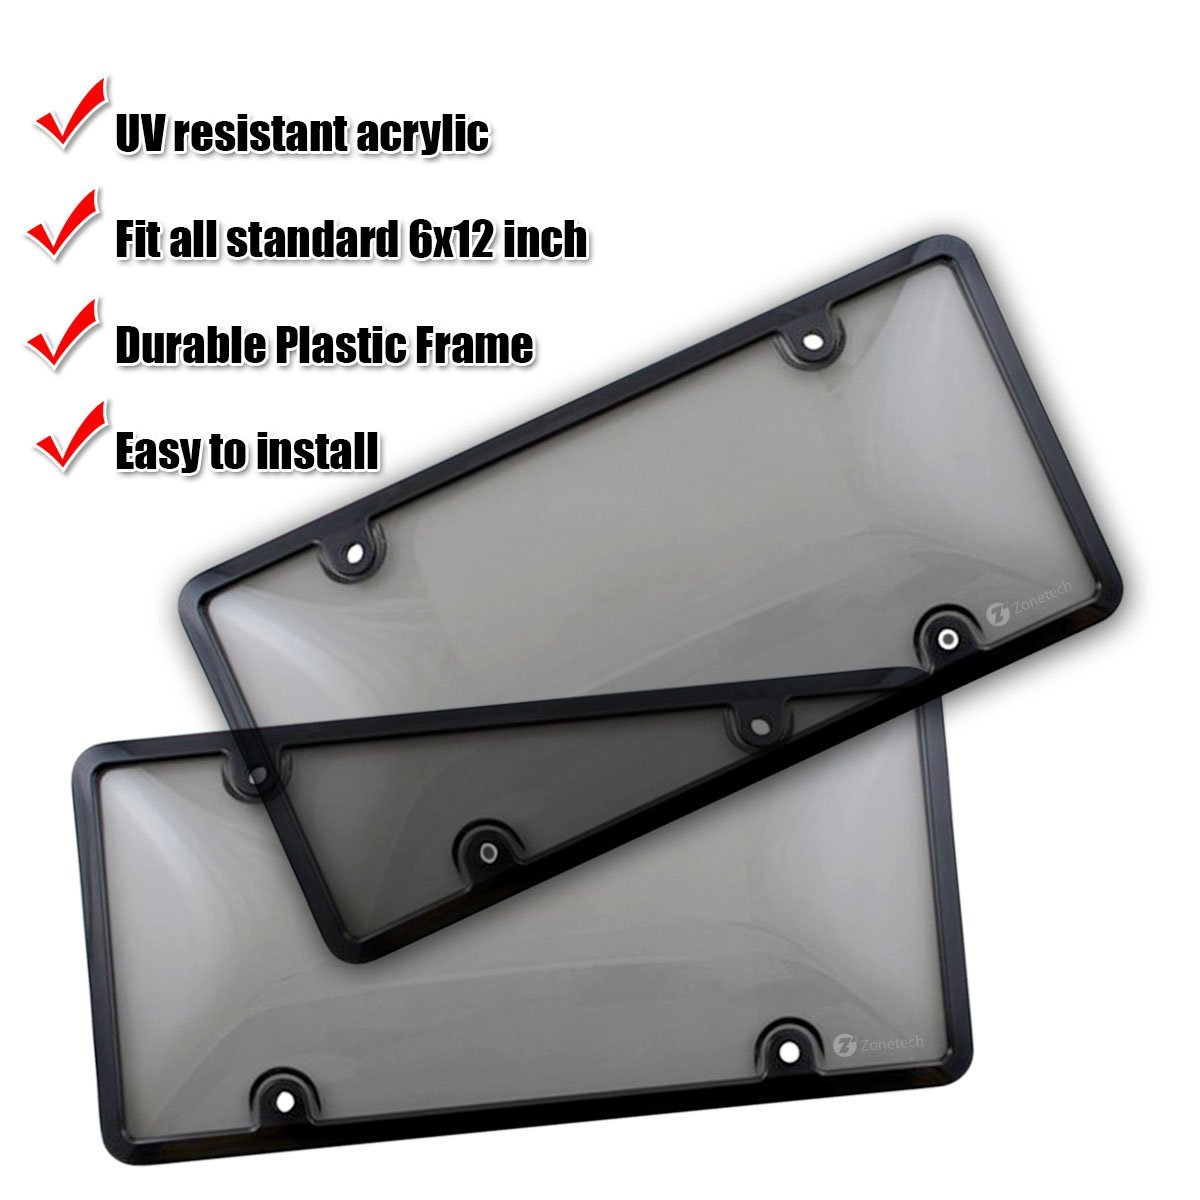 2-Pack Premium Quality Novelty//License Plate Clear Smoked and Black Bubble Shield and Frame Zone Tech Clear Smoked License Plate Cover Frame Shield Combo